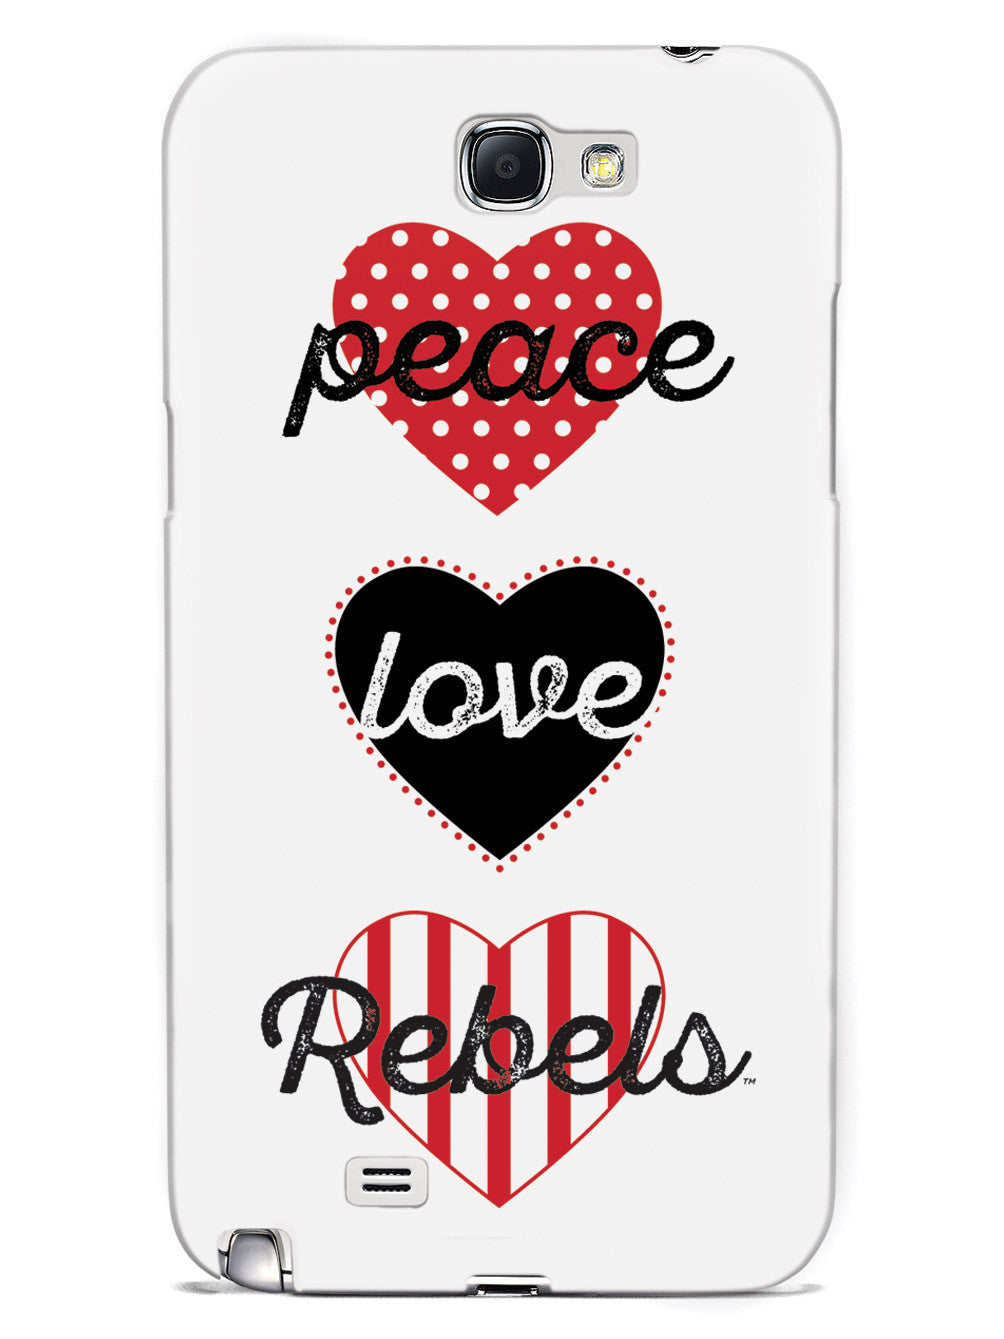 Peace, Love, Rebels - UNLV Case